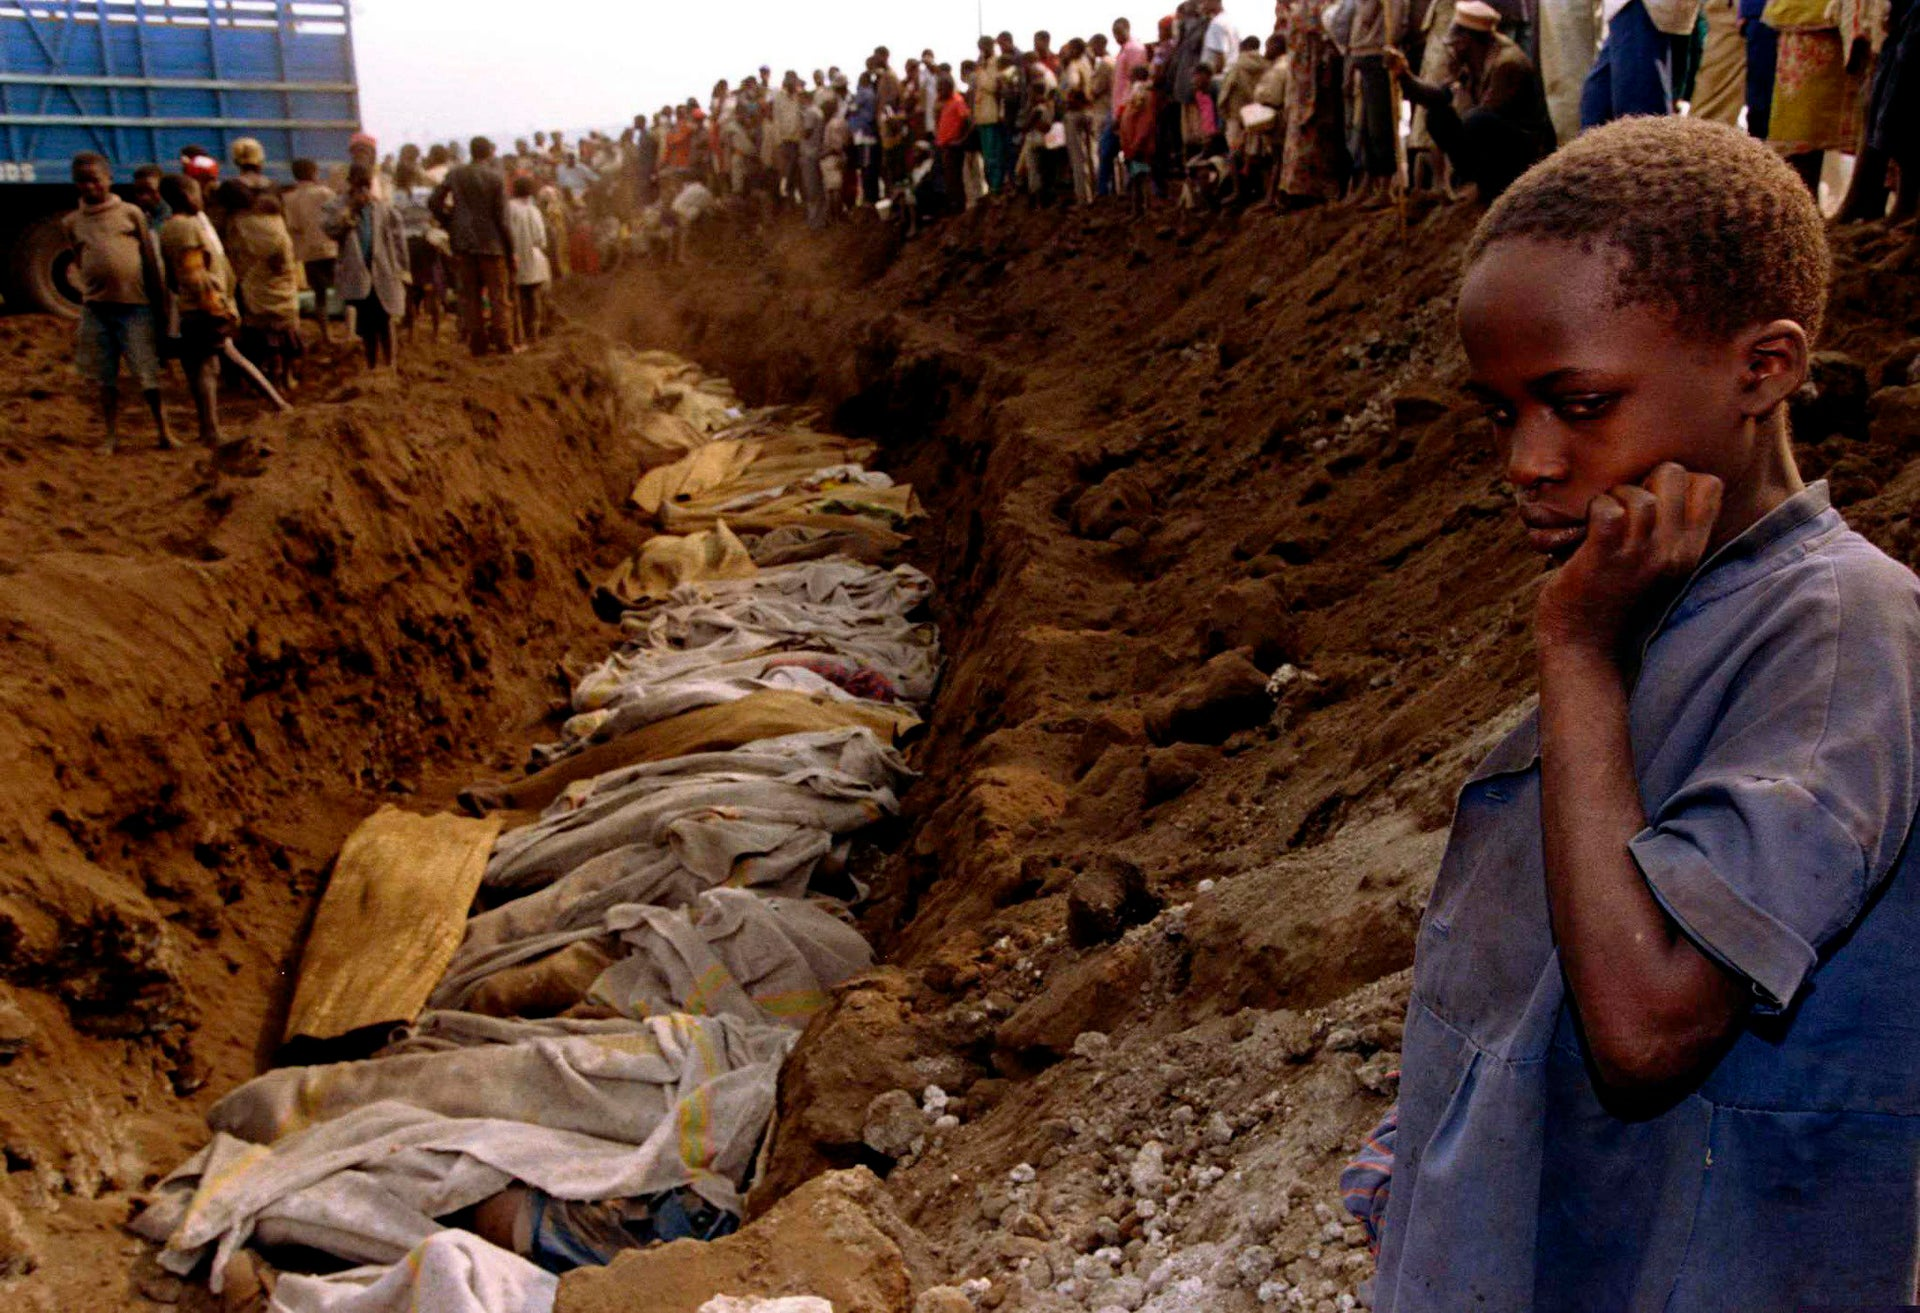 A Rwandan refugee girl stares at a mass grave where dozens of bodies have been laid to rest, July 20, 1994.